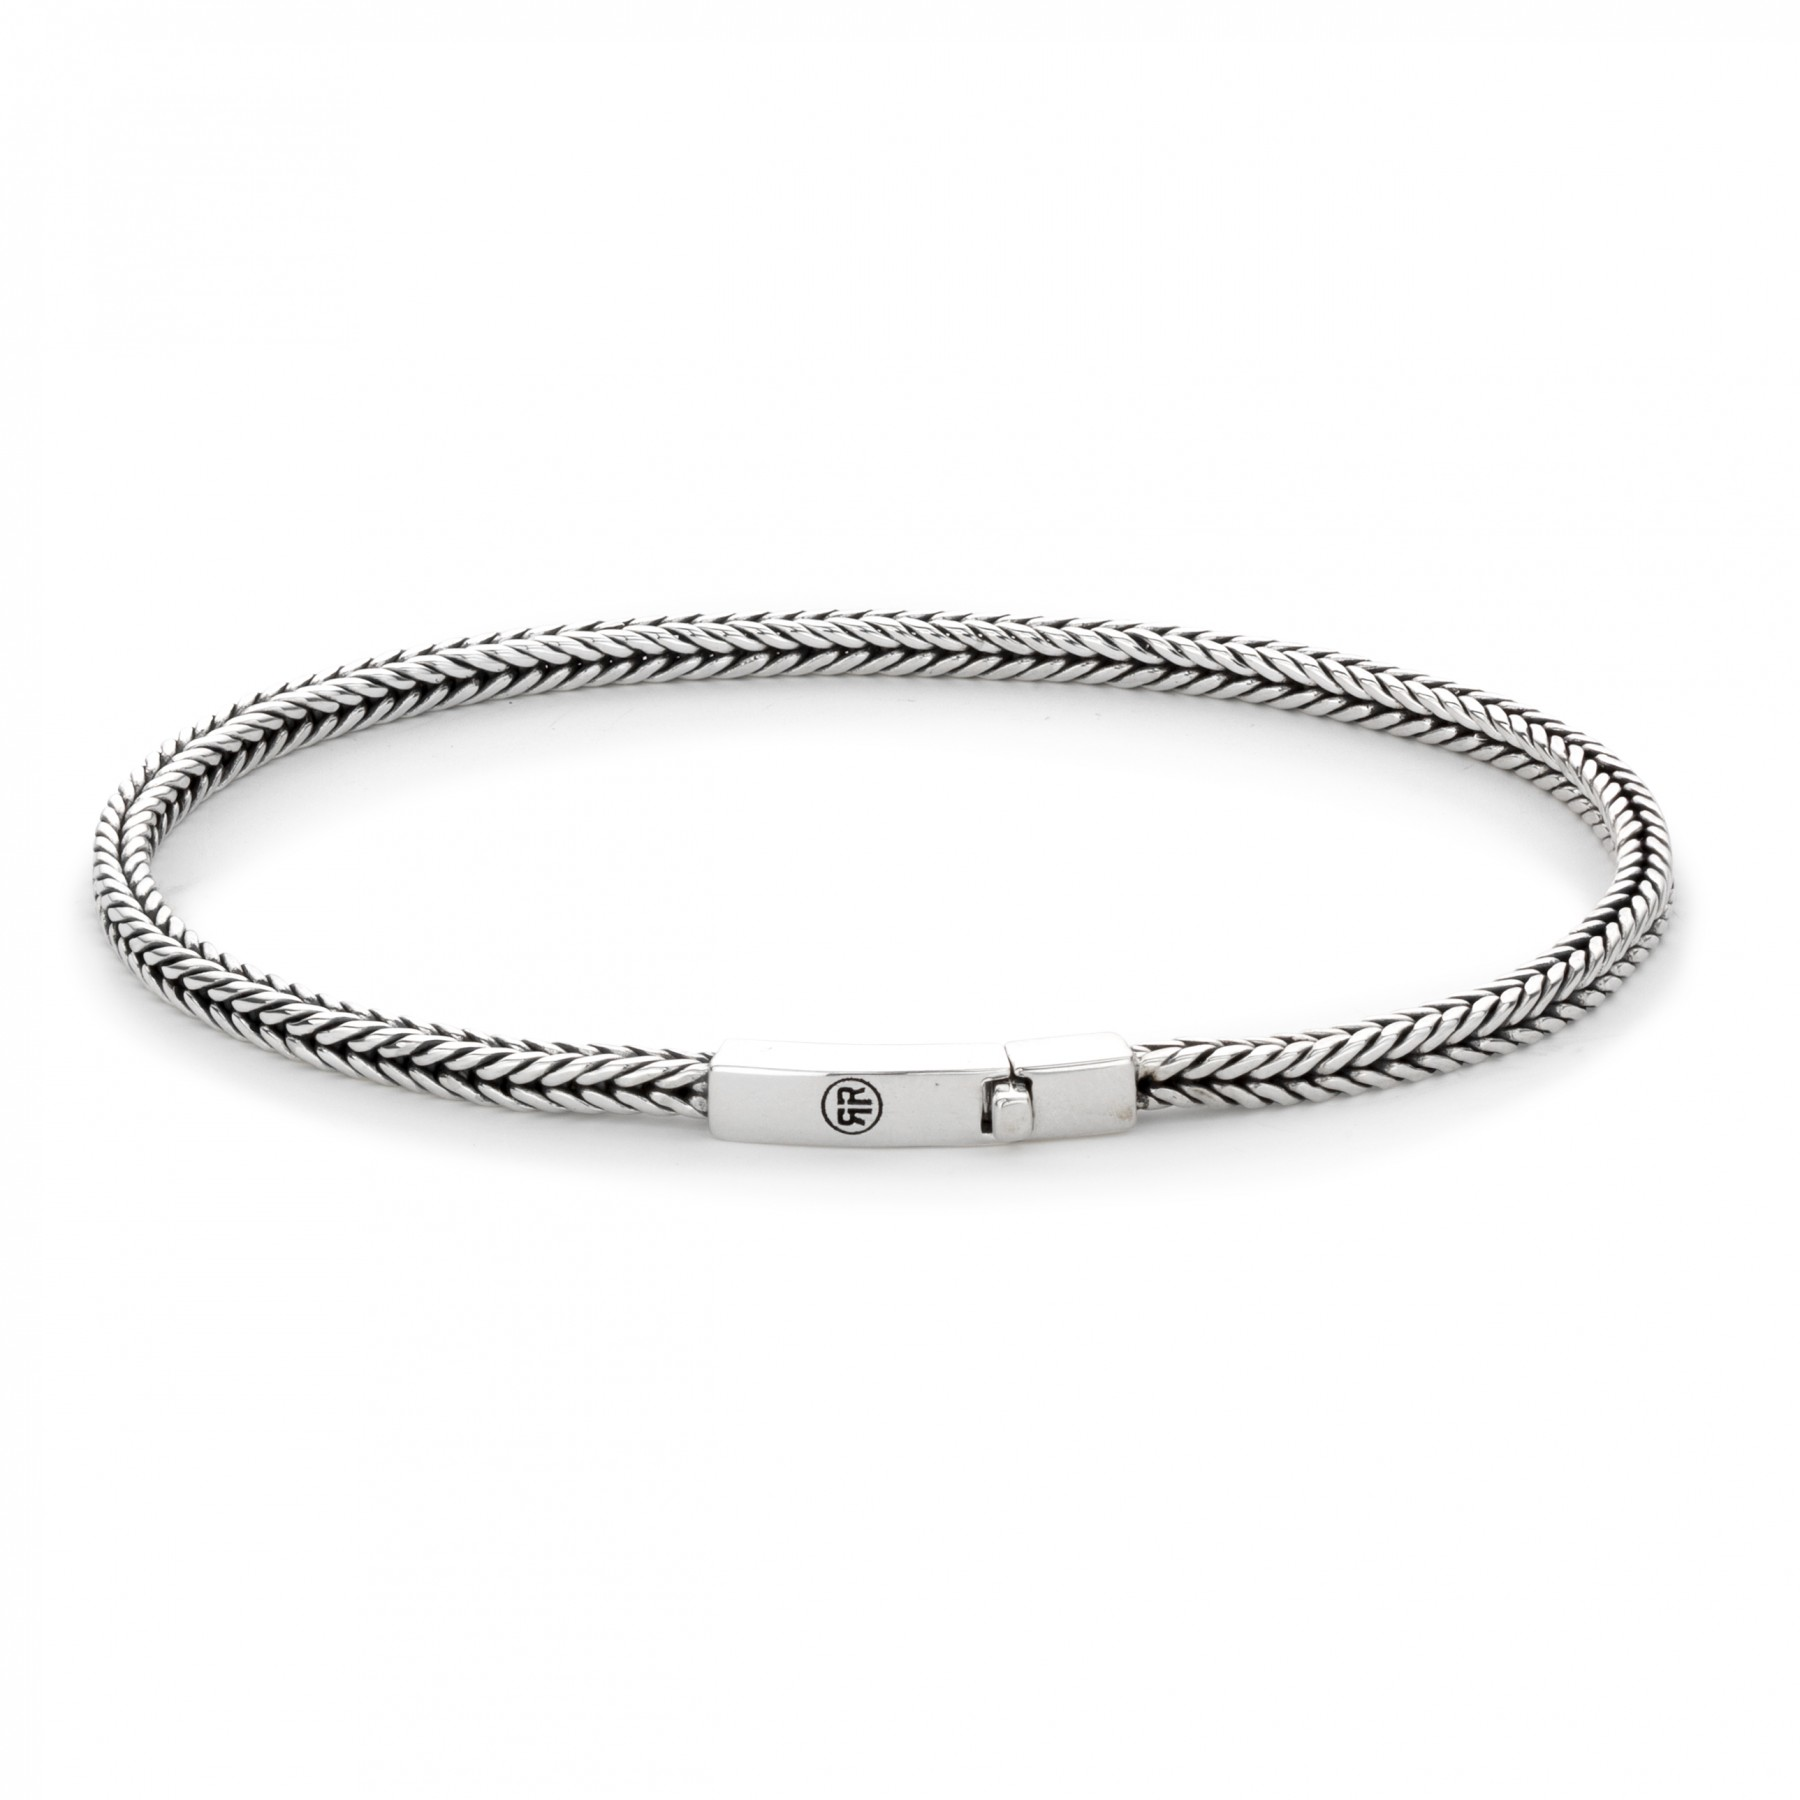 Rebel and Rose RR-BR015-S-M Armband todo - small link 3mm M - 13.50 gr. 925 3mm 19.5